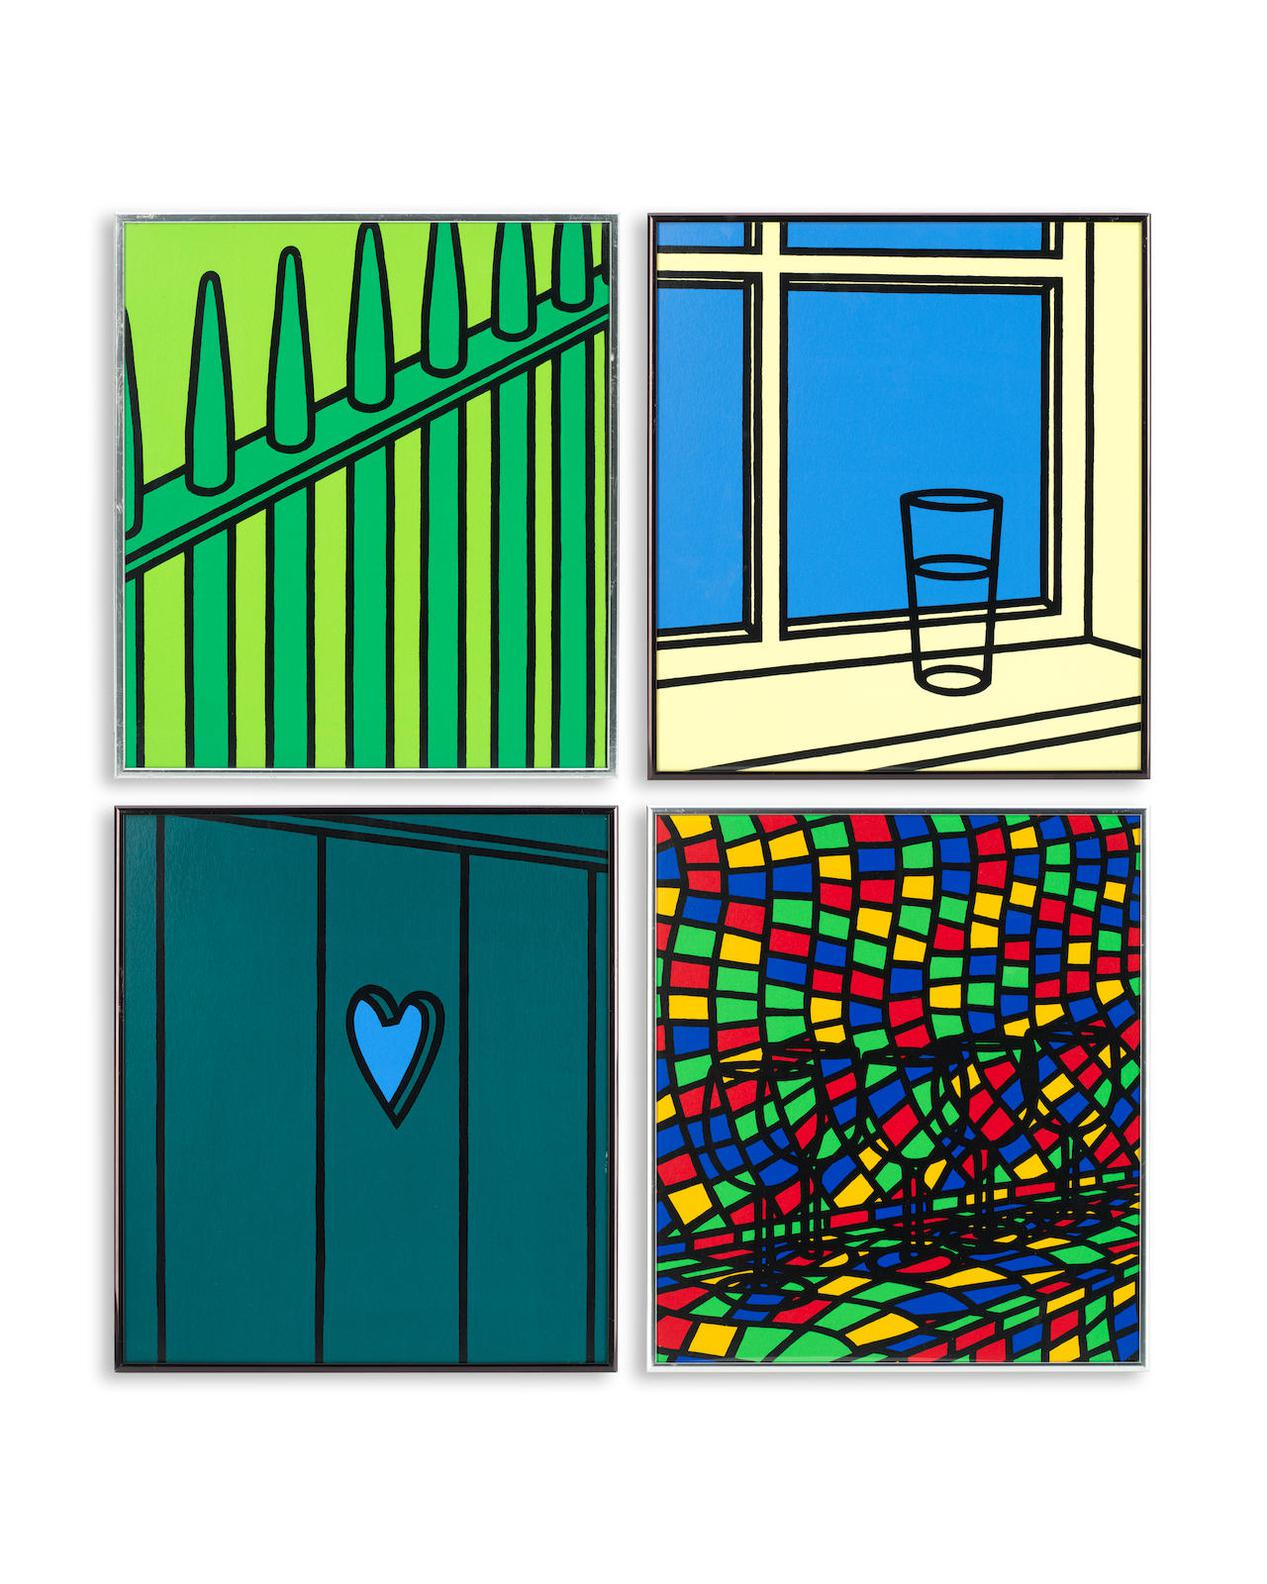 Patrick Caulfield-Four Plates From Jules La Forgue-1973